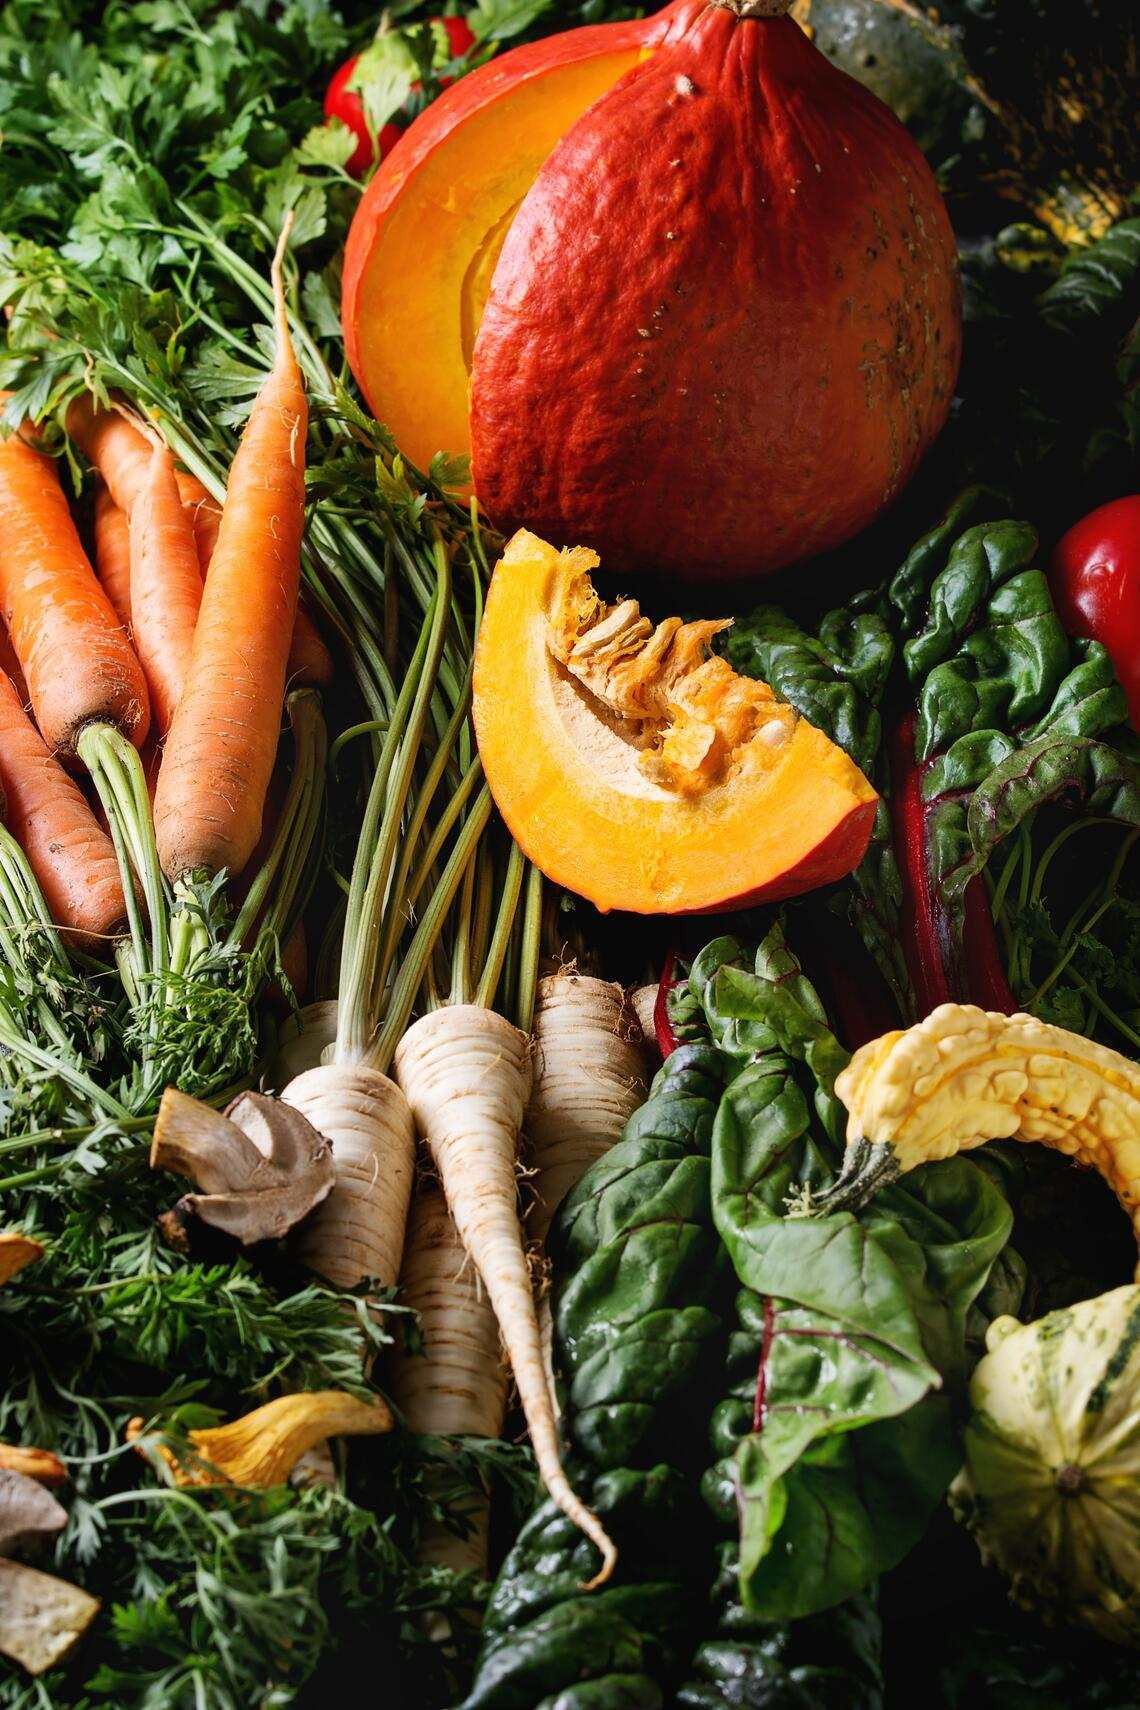 Variety of autumn harvest vegetables carrot, parsnip, chard, paprika, hokkaido pumpkin, porcini and chanterelles mushrooms. Fall harvest concept. Close up. (Photo by: Natasha Breen/REDA&CO/Universal Images Group via Getty Images)